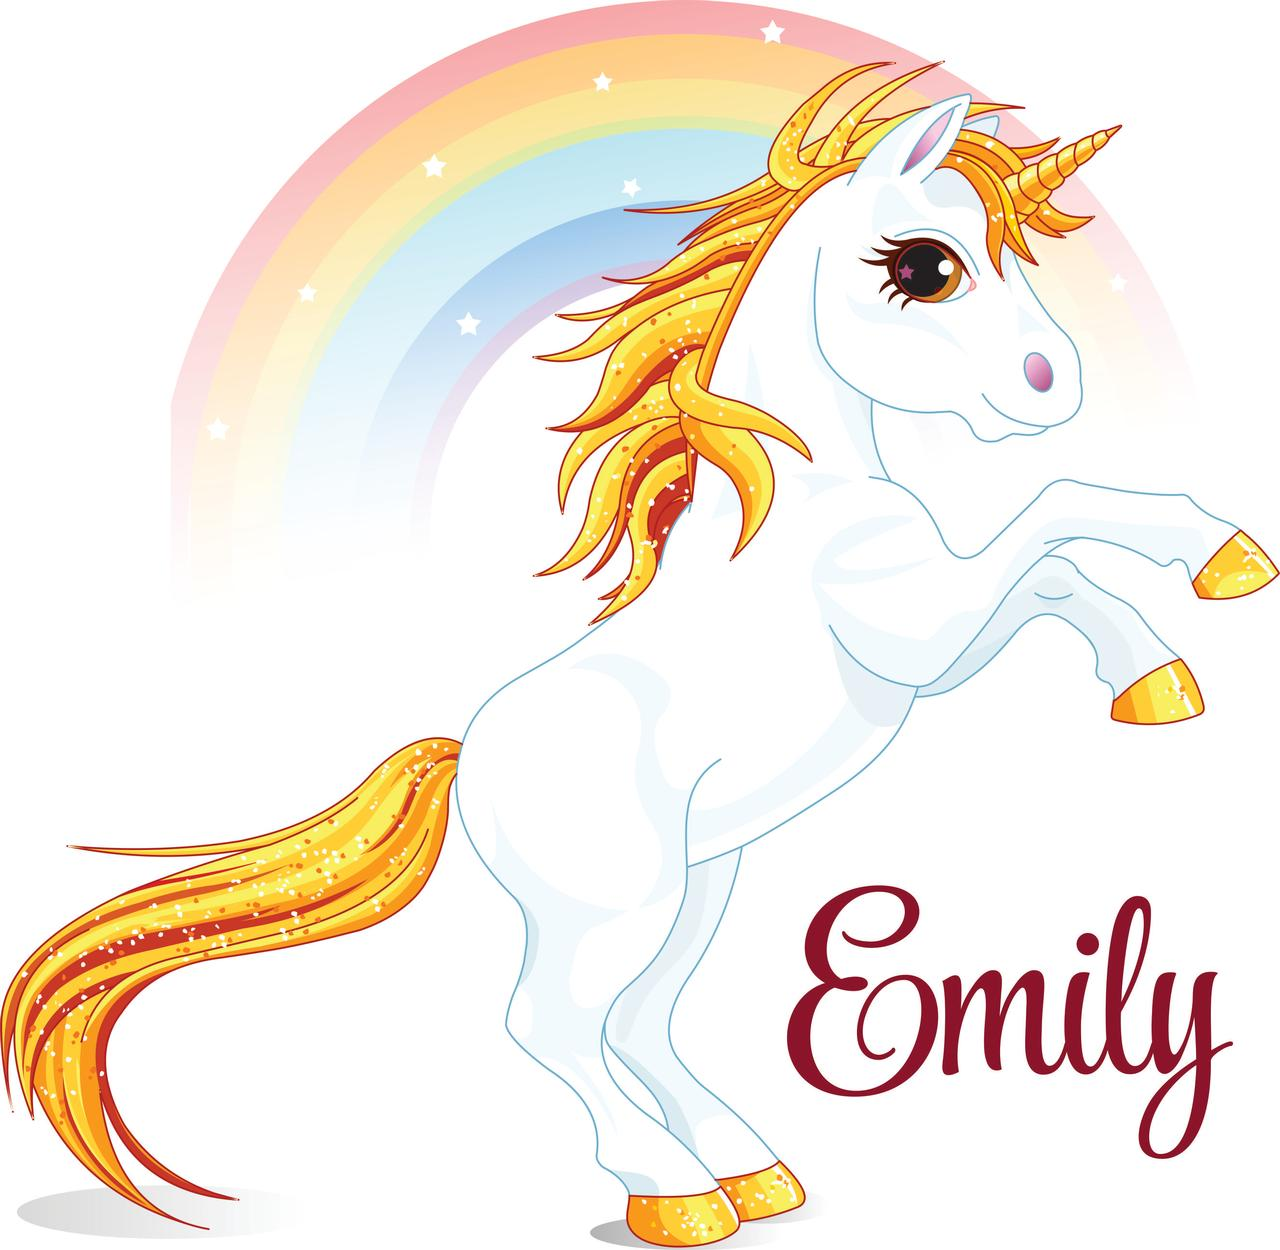 Personalized Name Vinyl Decal Sticker Custom Initial Wall Art Personalization Decor Girls Unicorn Colorful Rainbow Magical Fairytale 10 Inches X 10 Inches